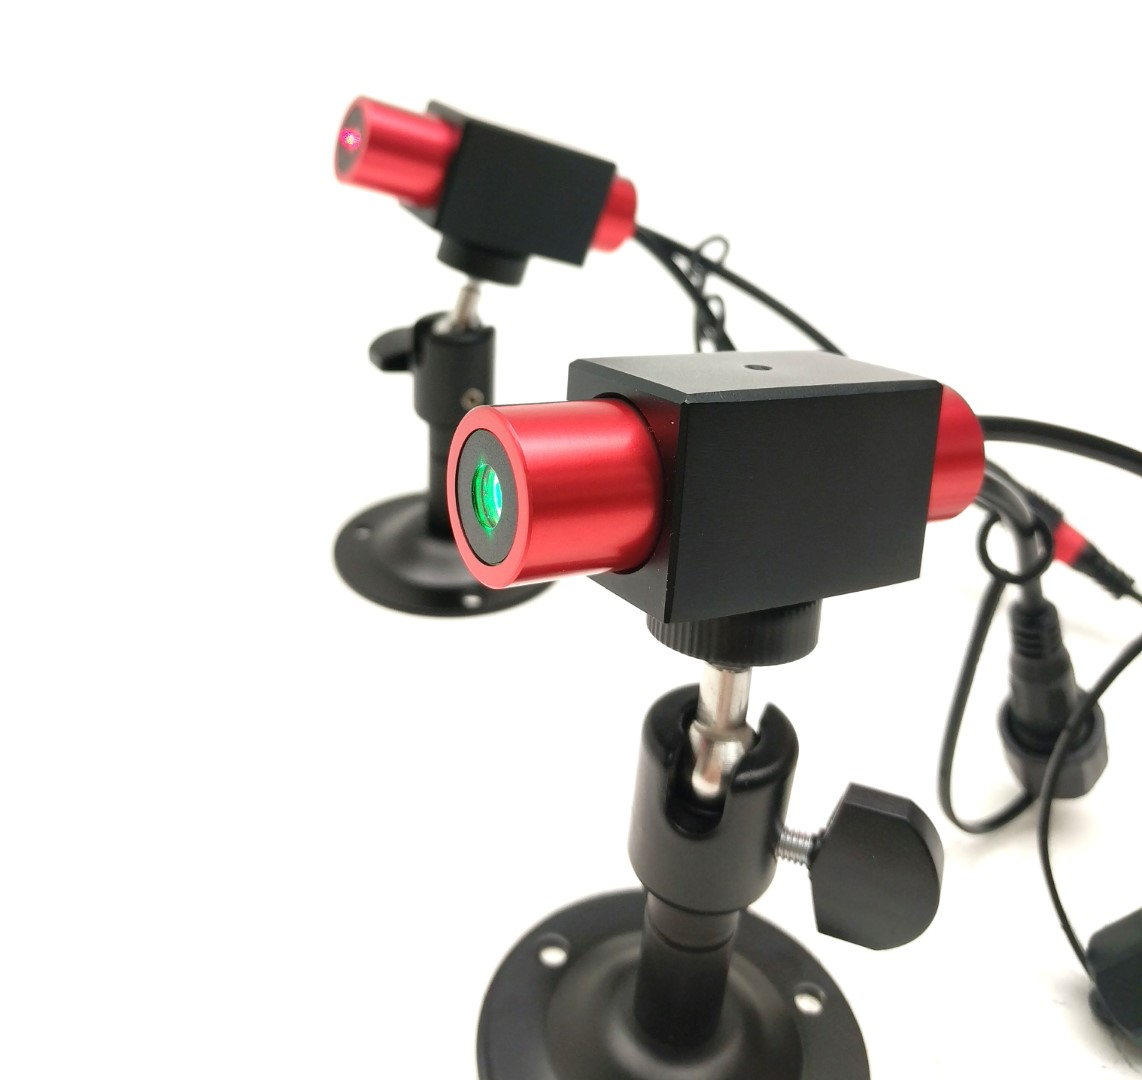 5 mW 635 nm Red Premium Structured Line of 5 dots Laser, 6° fan angle, adjustable focus, TTL+, Sealed IP67